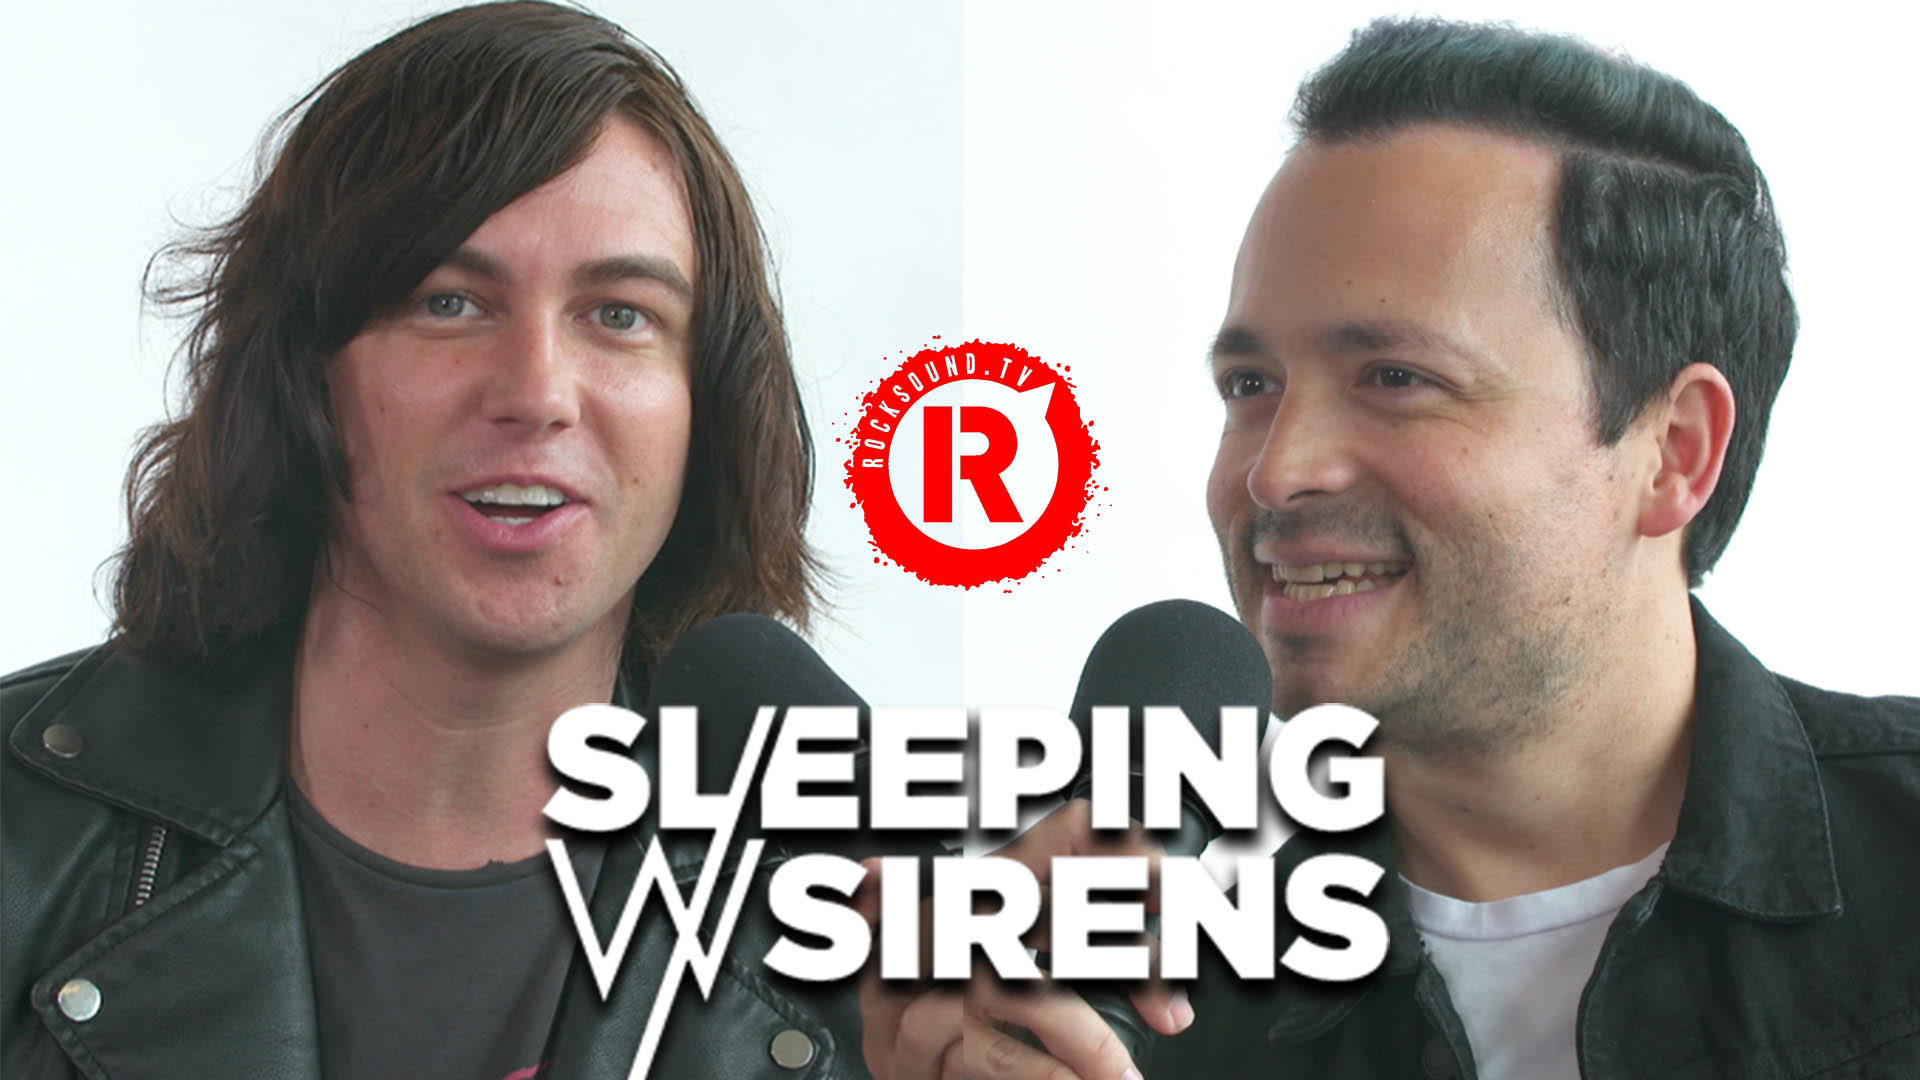 Sleeping With Sirens' Kellin and Nick have revealed that new music is (hopefully) on the way very soon.